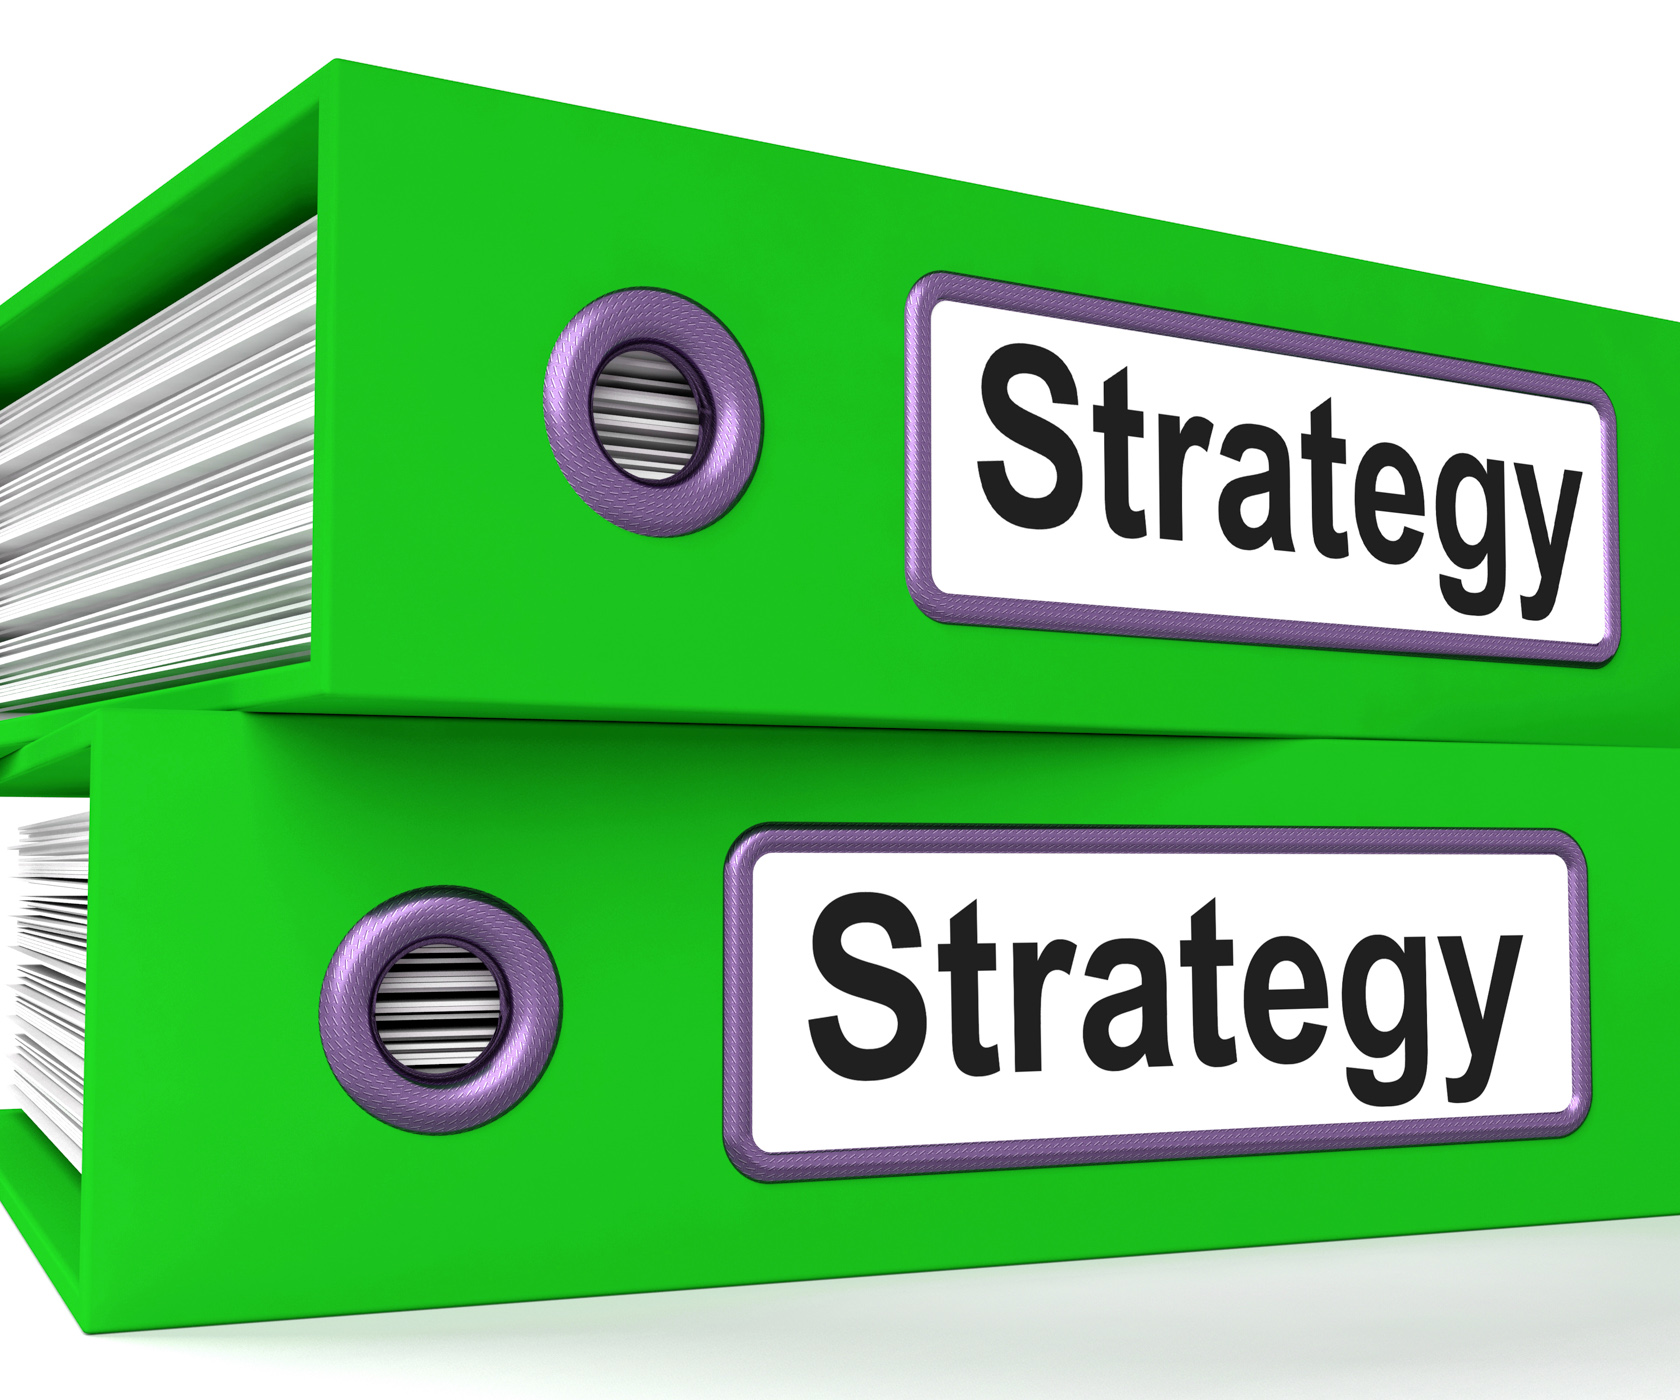 Strategy Folders Show Strategic Planning And Business Processes, Business, Method, Organisation, Organise, HQ Photo